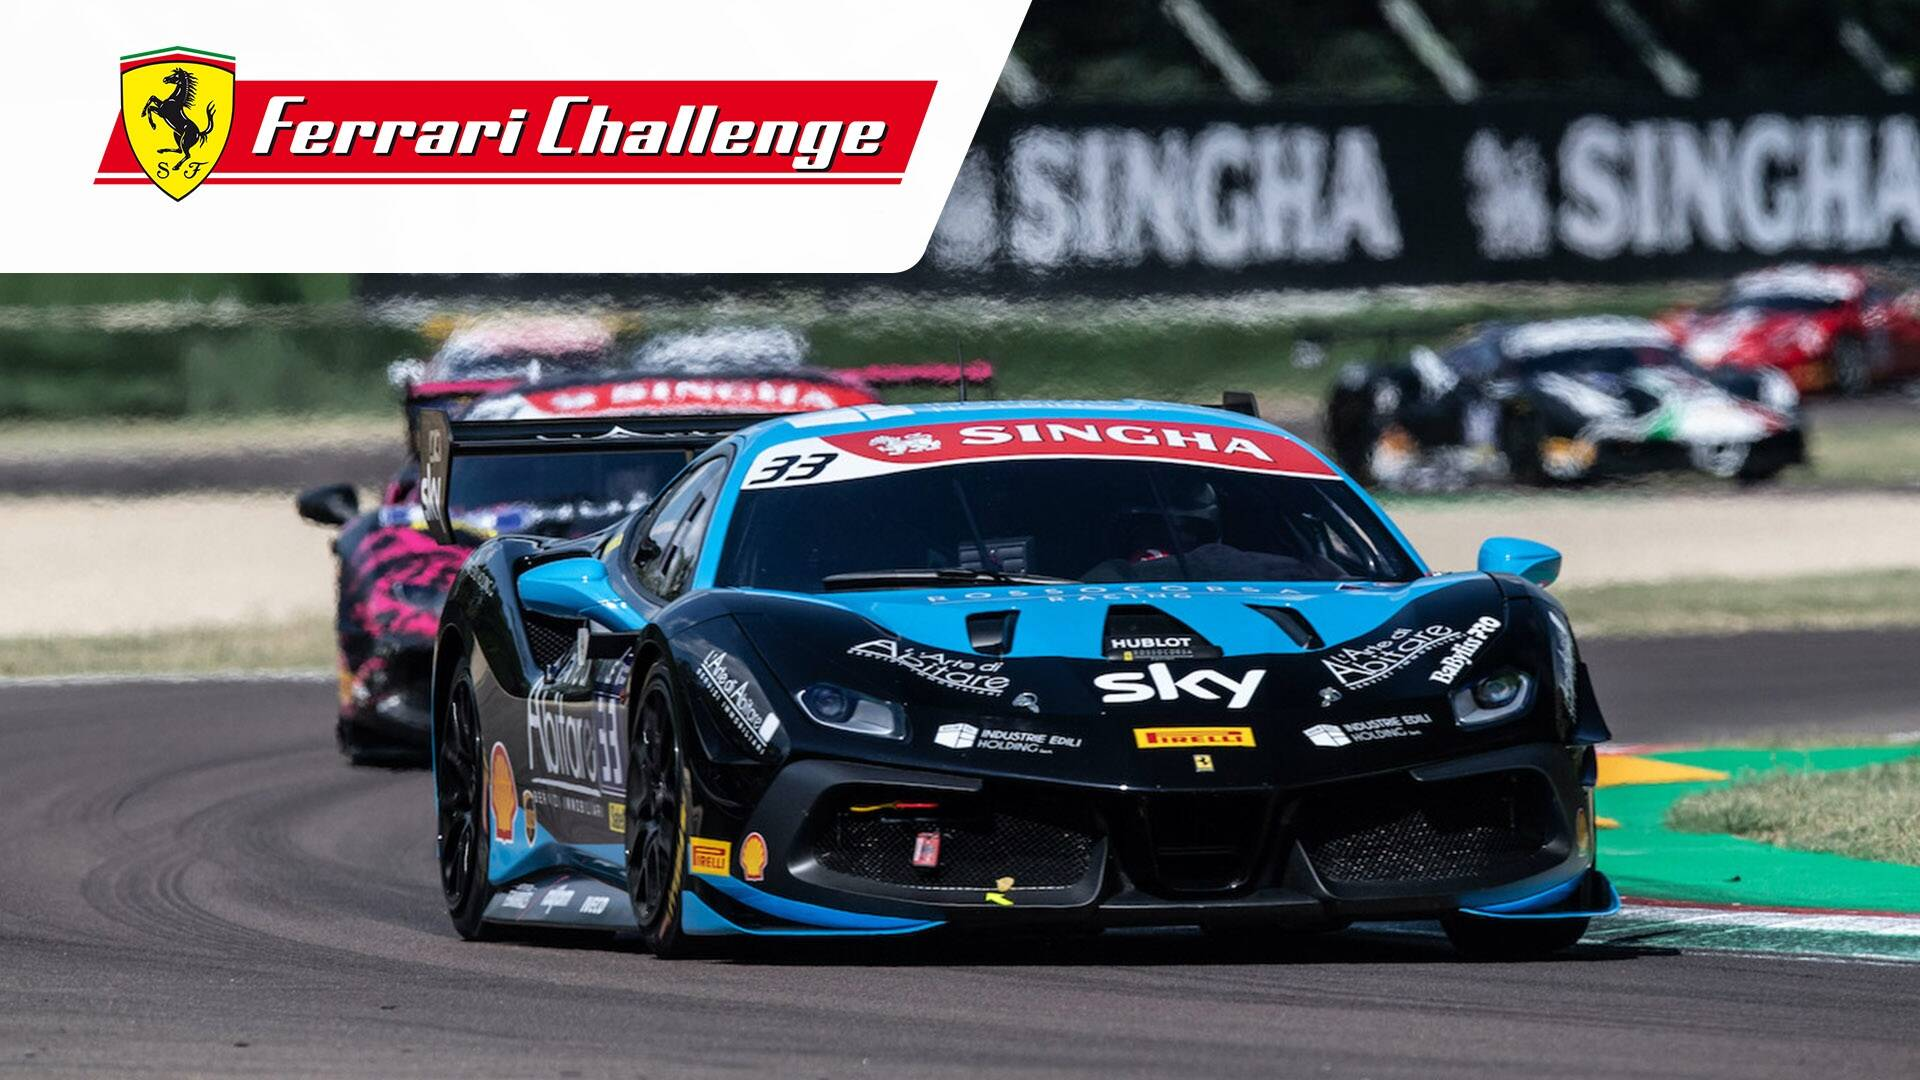 Ferrari Challenge Europe Spa Francorchamps Coppa Shell Race 1 Ferrari Challenge Europe Motorsport Tv